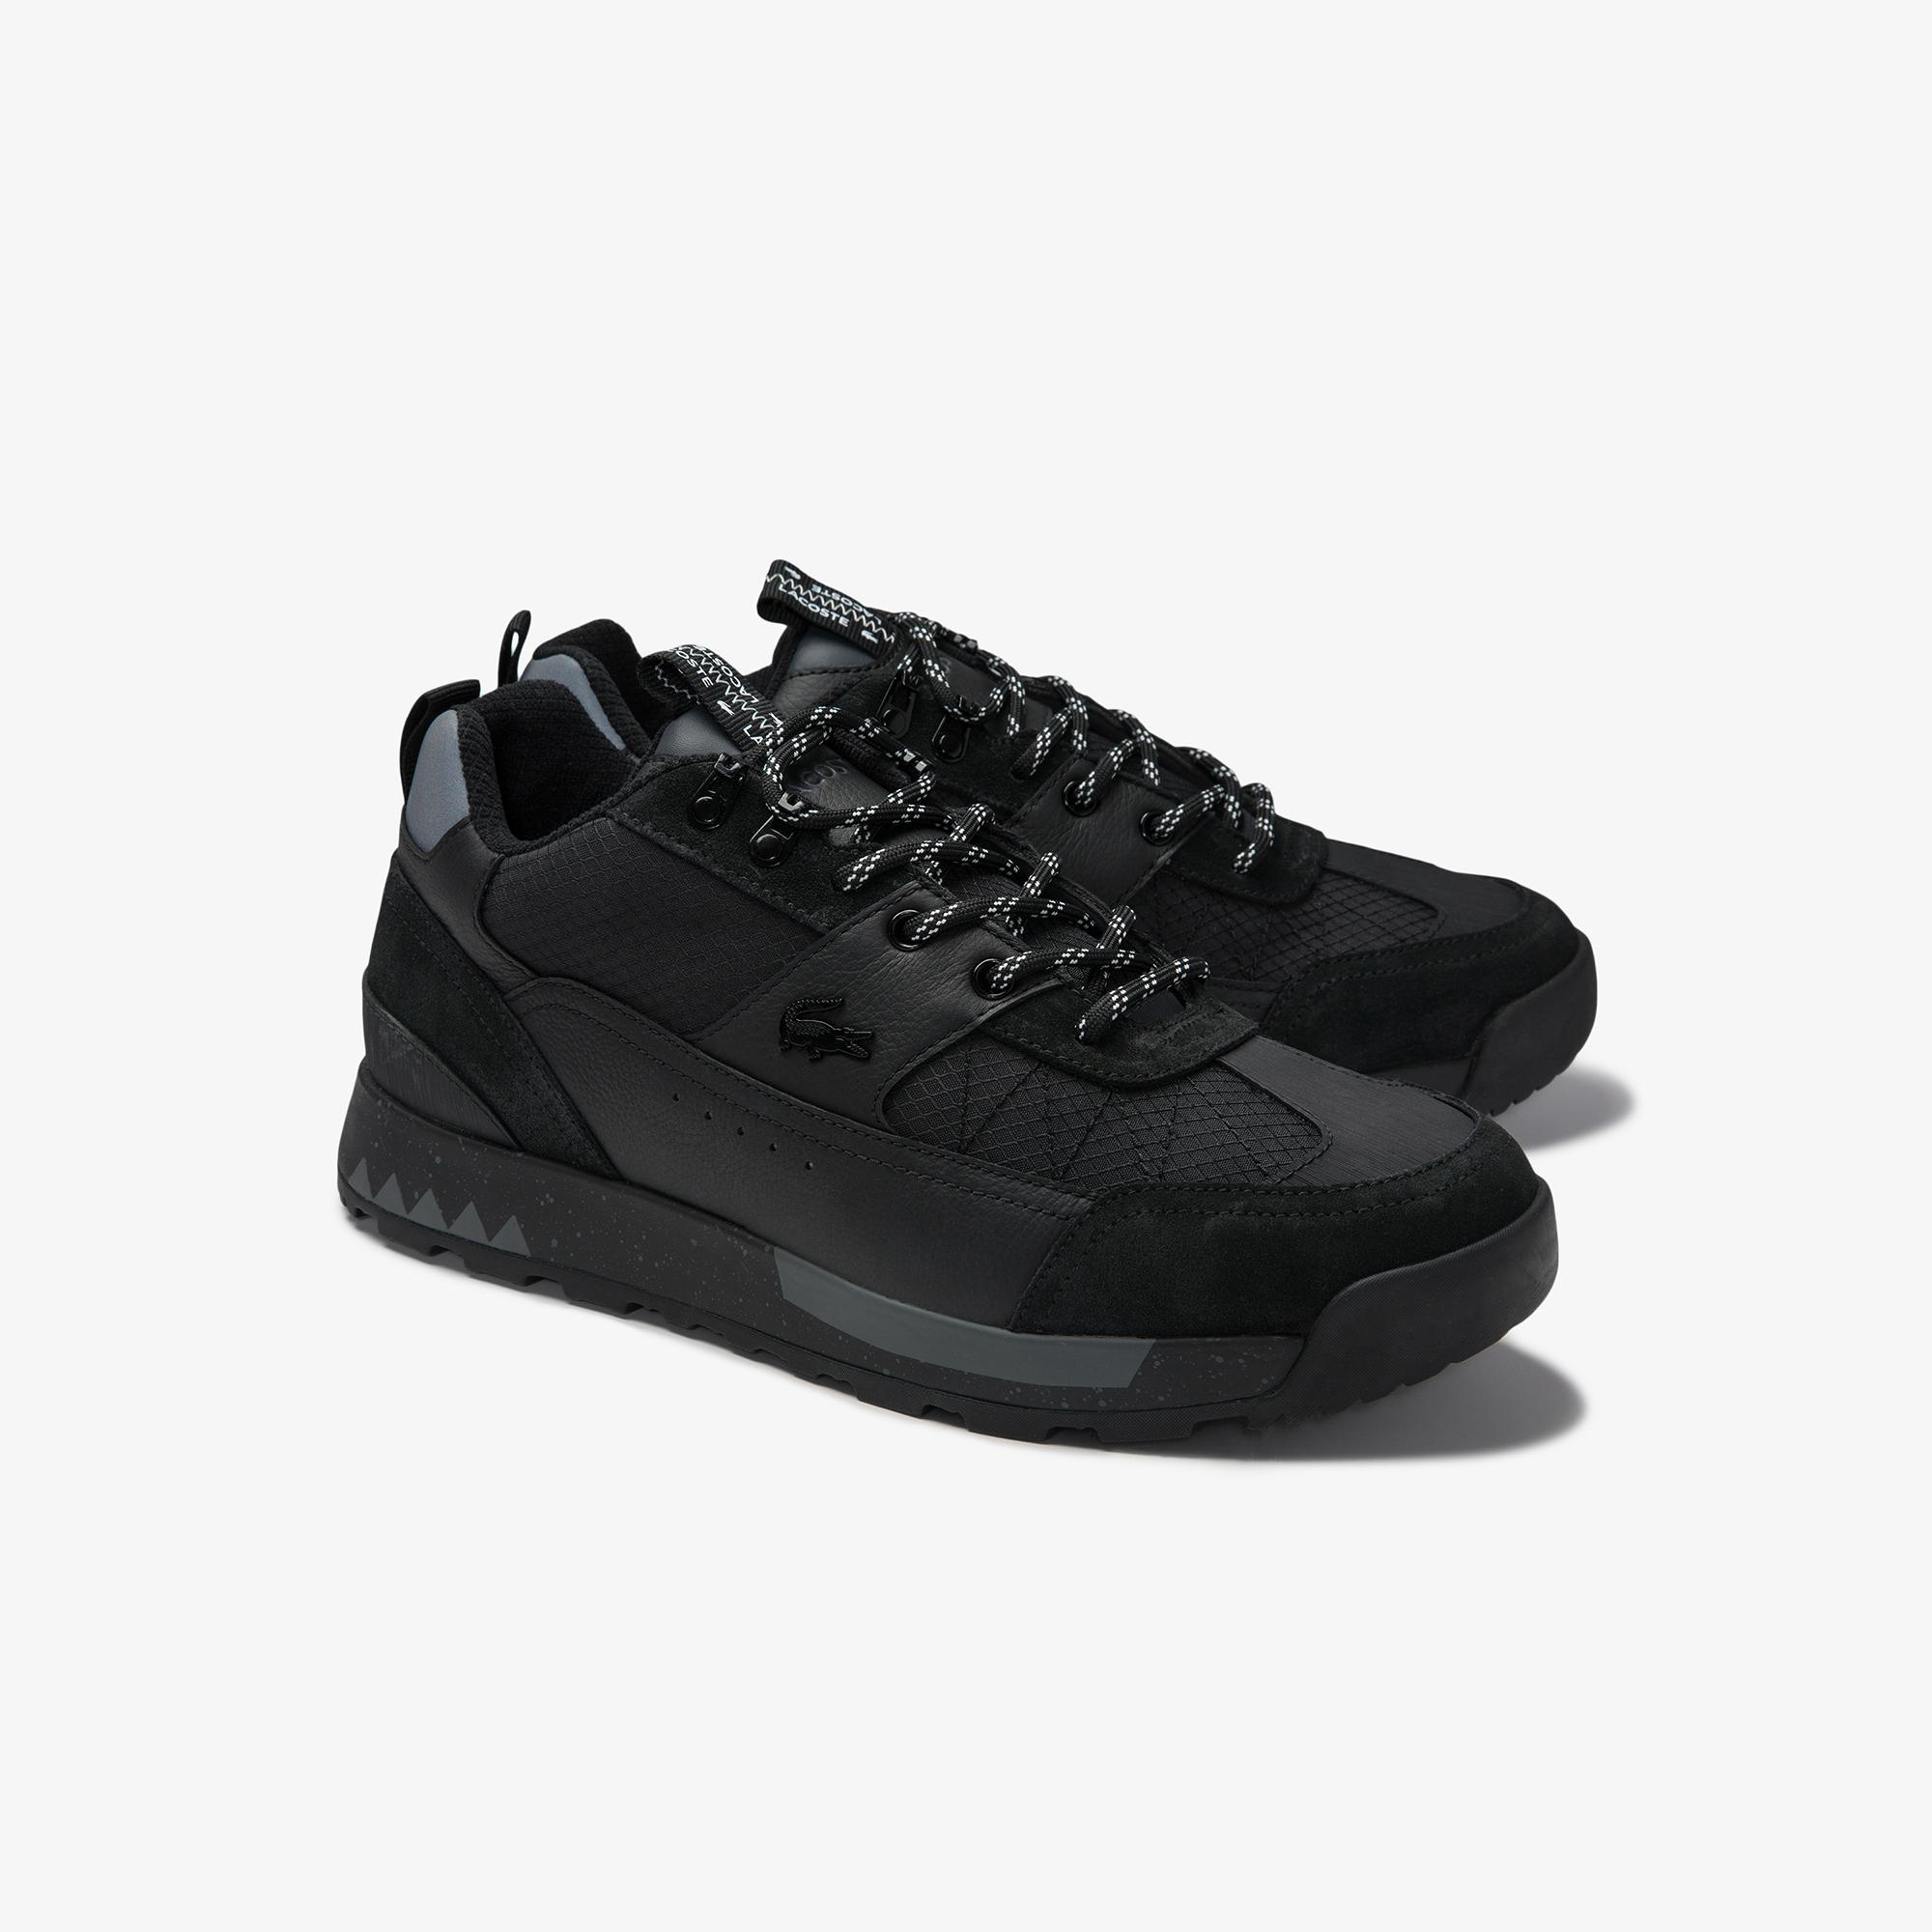 Lacoste Men's Urban Breaker Textile, Leather and Synthetic Sneakers